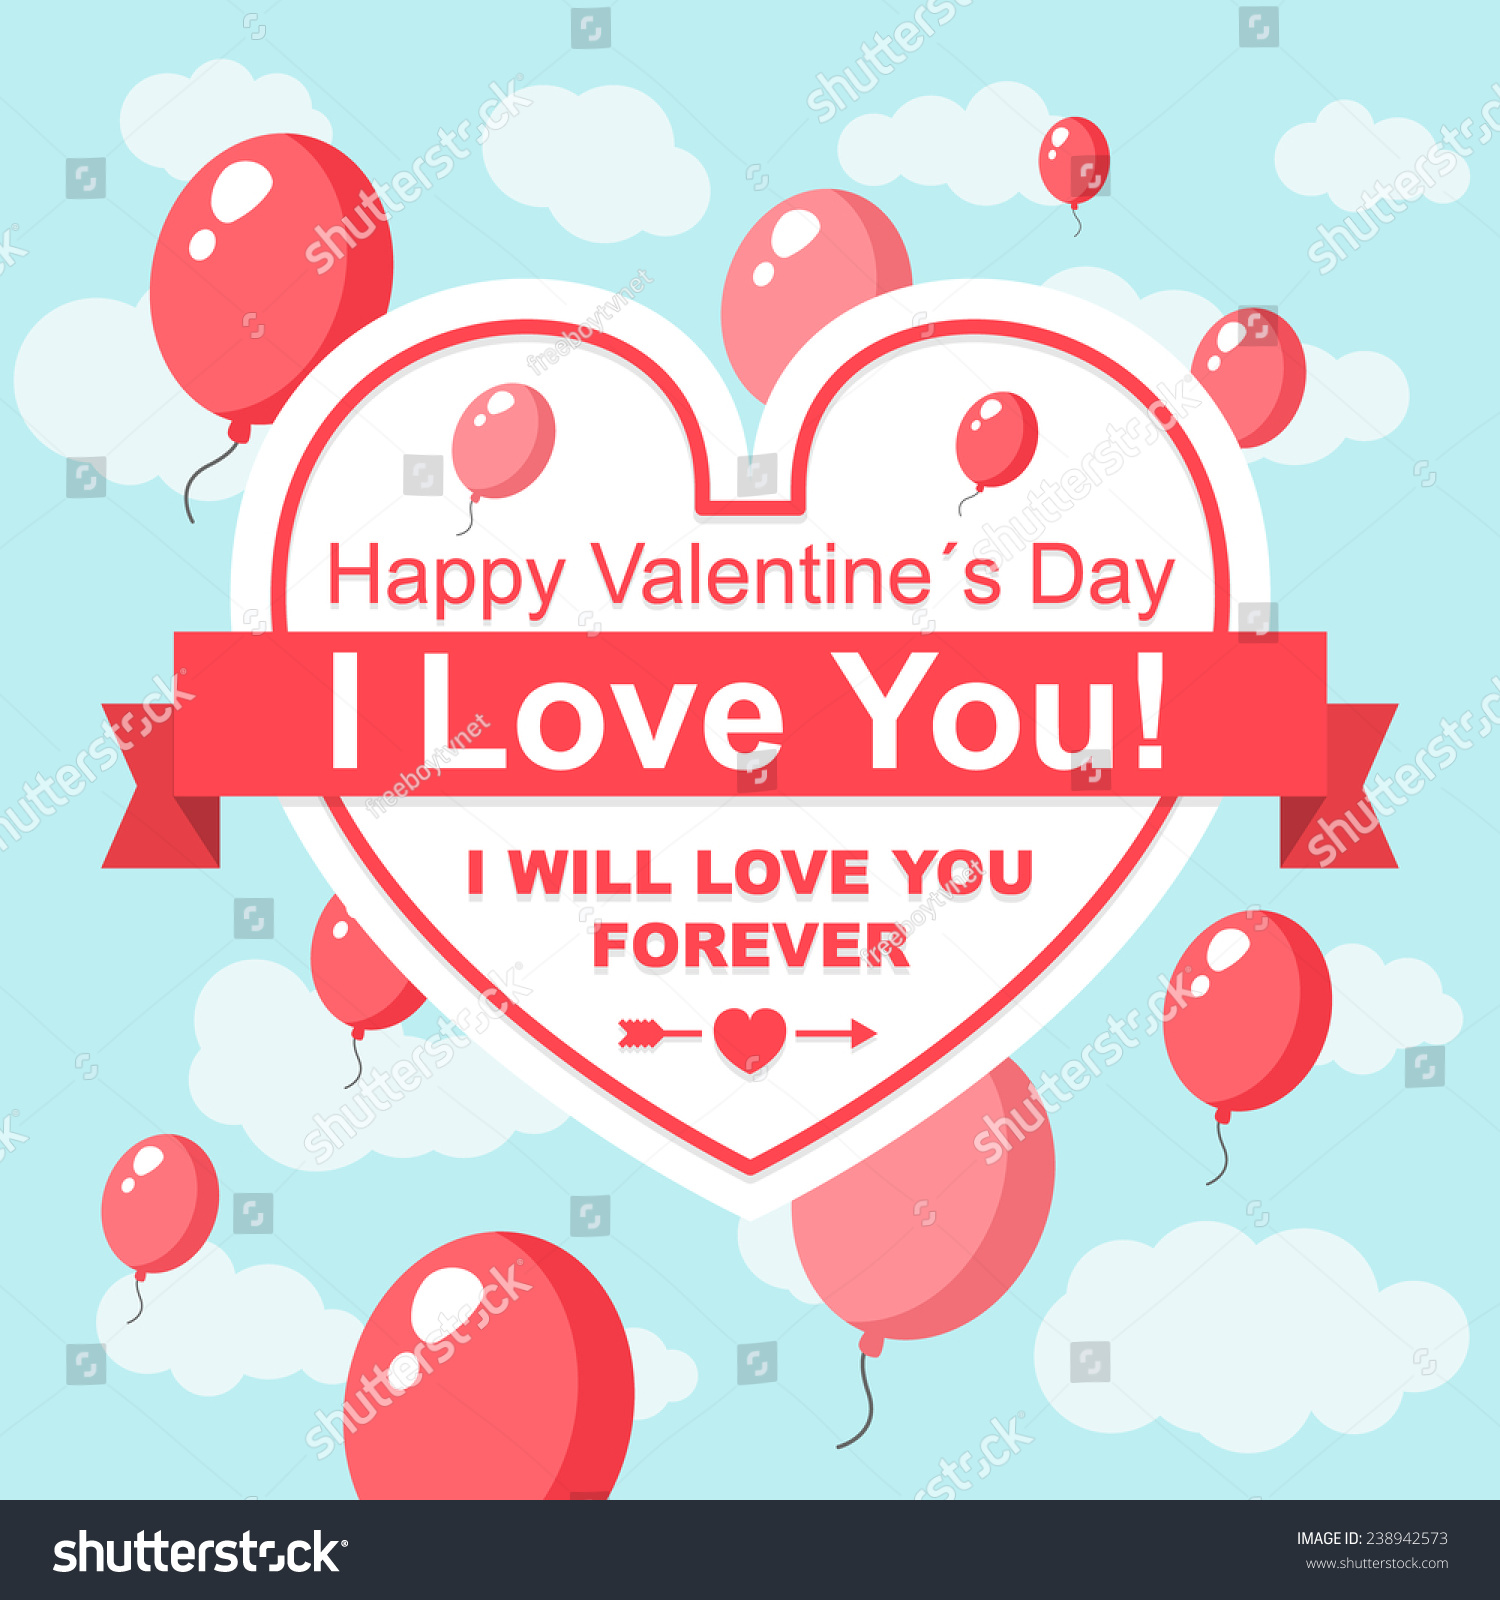 Happy Valentines Day I Love You